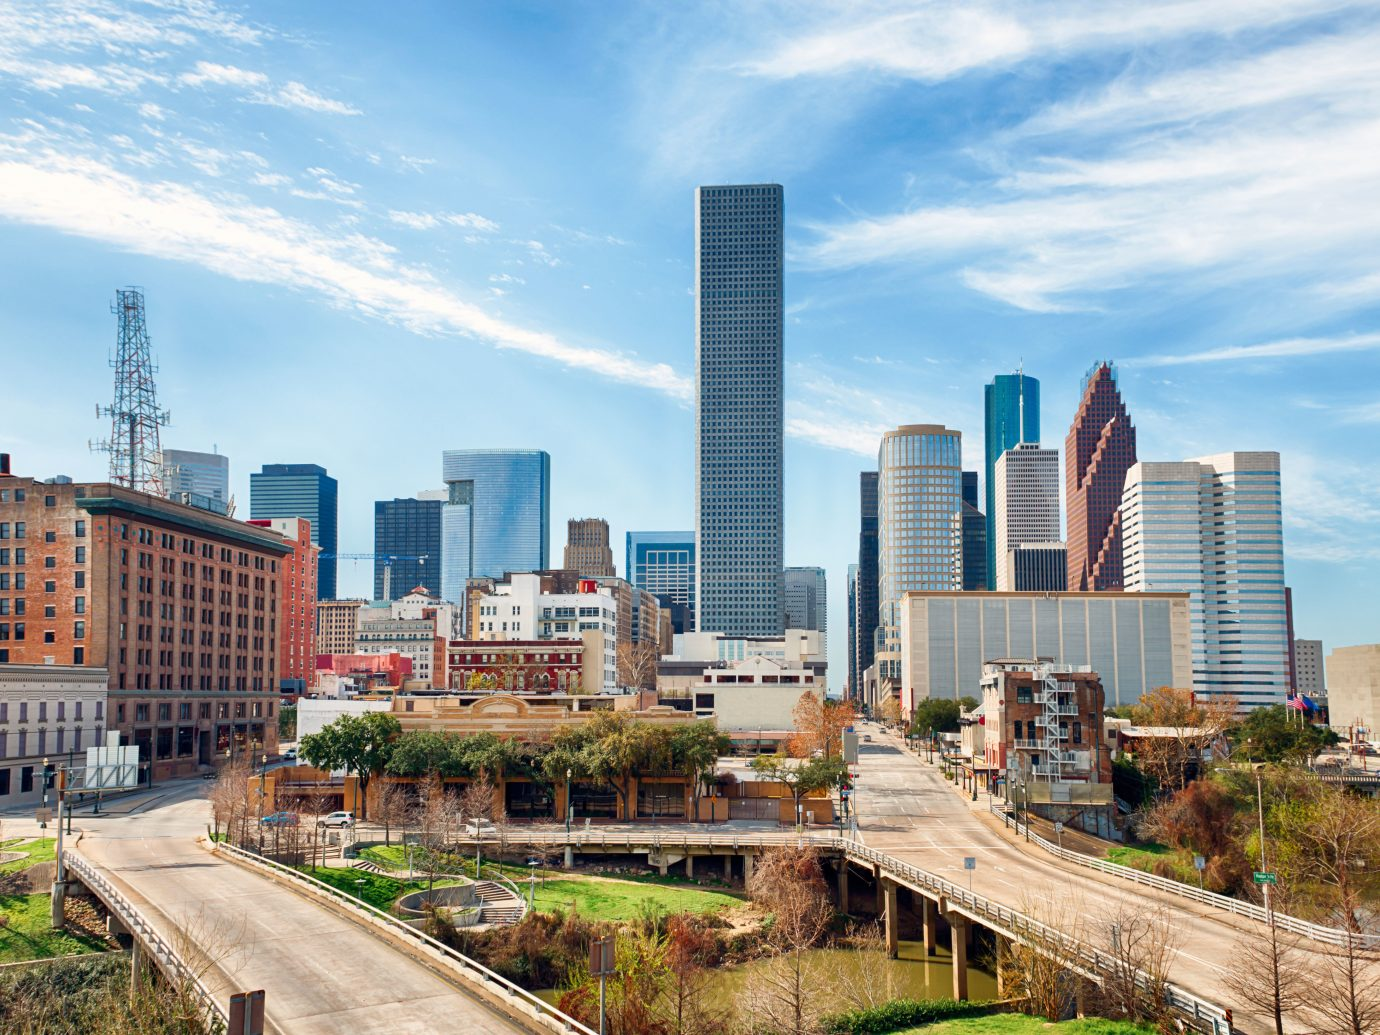 City Houston Outdoors + Adventure Scenic views Texas Trip Ideas outdoor sky metropolitan area grass skyline tower block skyscraper cityscape geographical feature landmark urban area metropolis human settlement residential area neighbourhood Downtown horizon Architecture condominium panorama tower